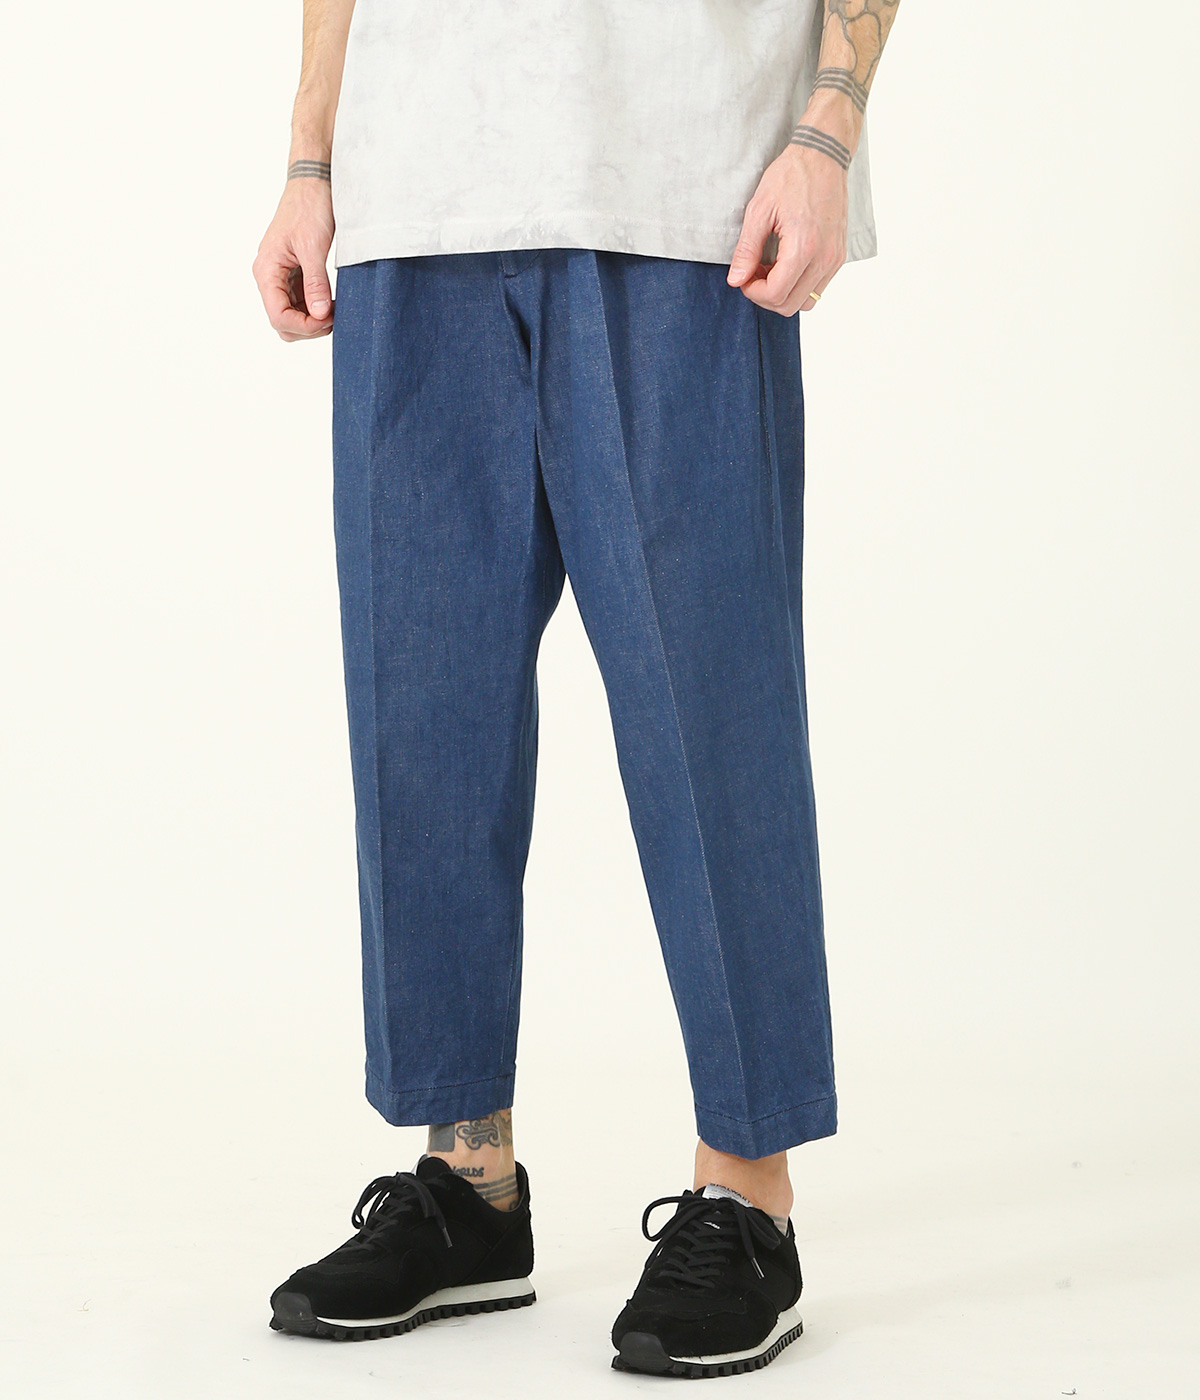 12oz. DENIM 1TUCK TAPERED TROUSERS